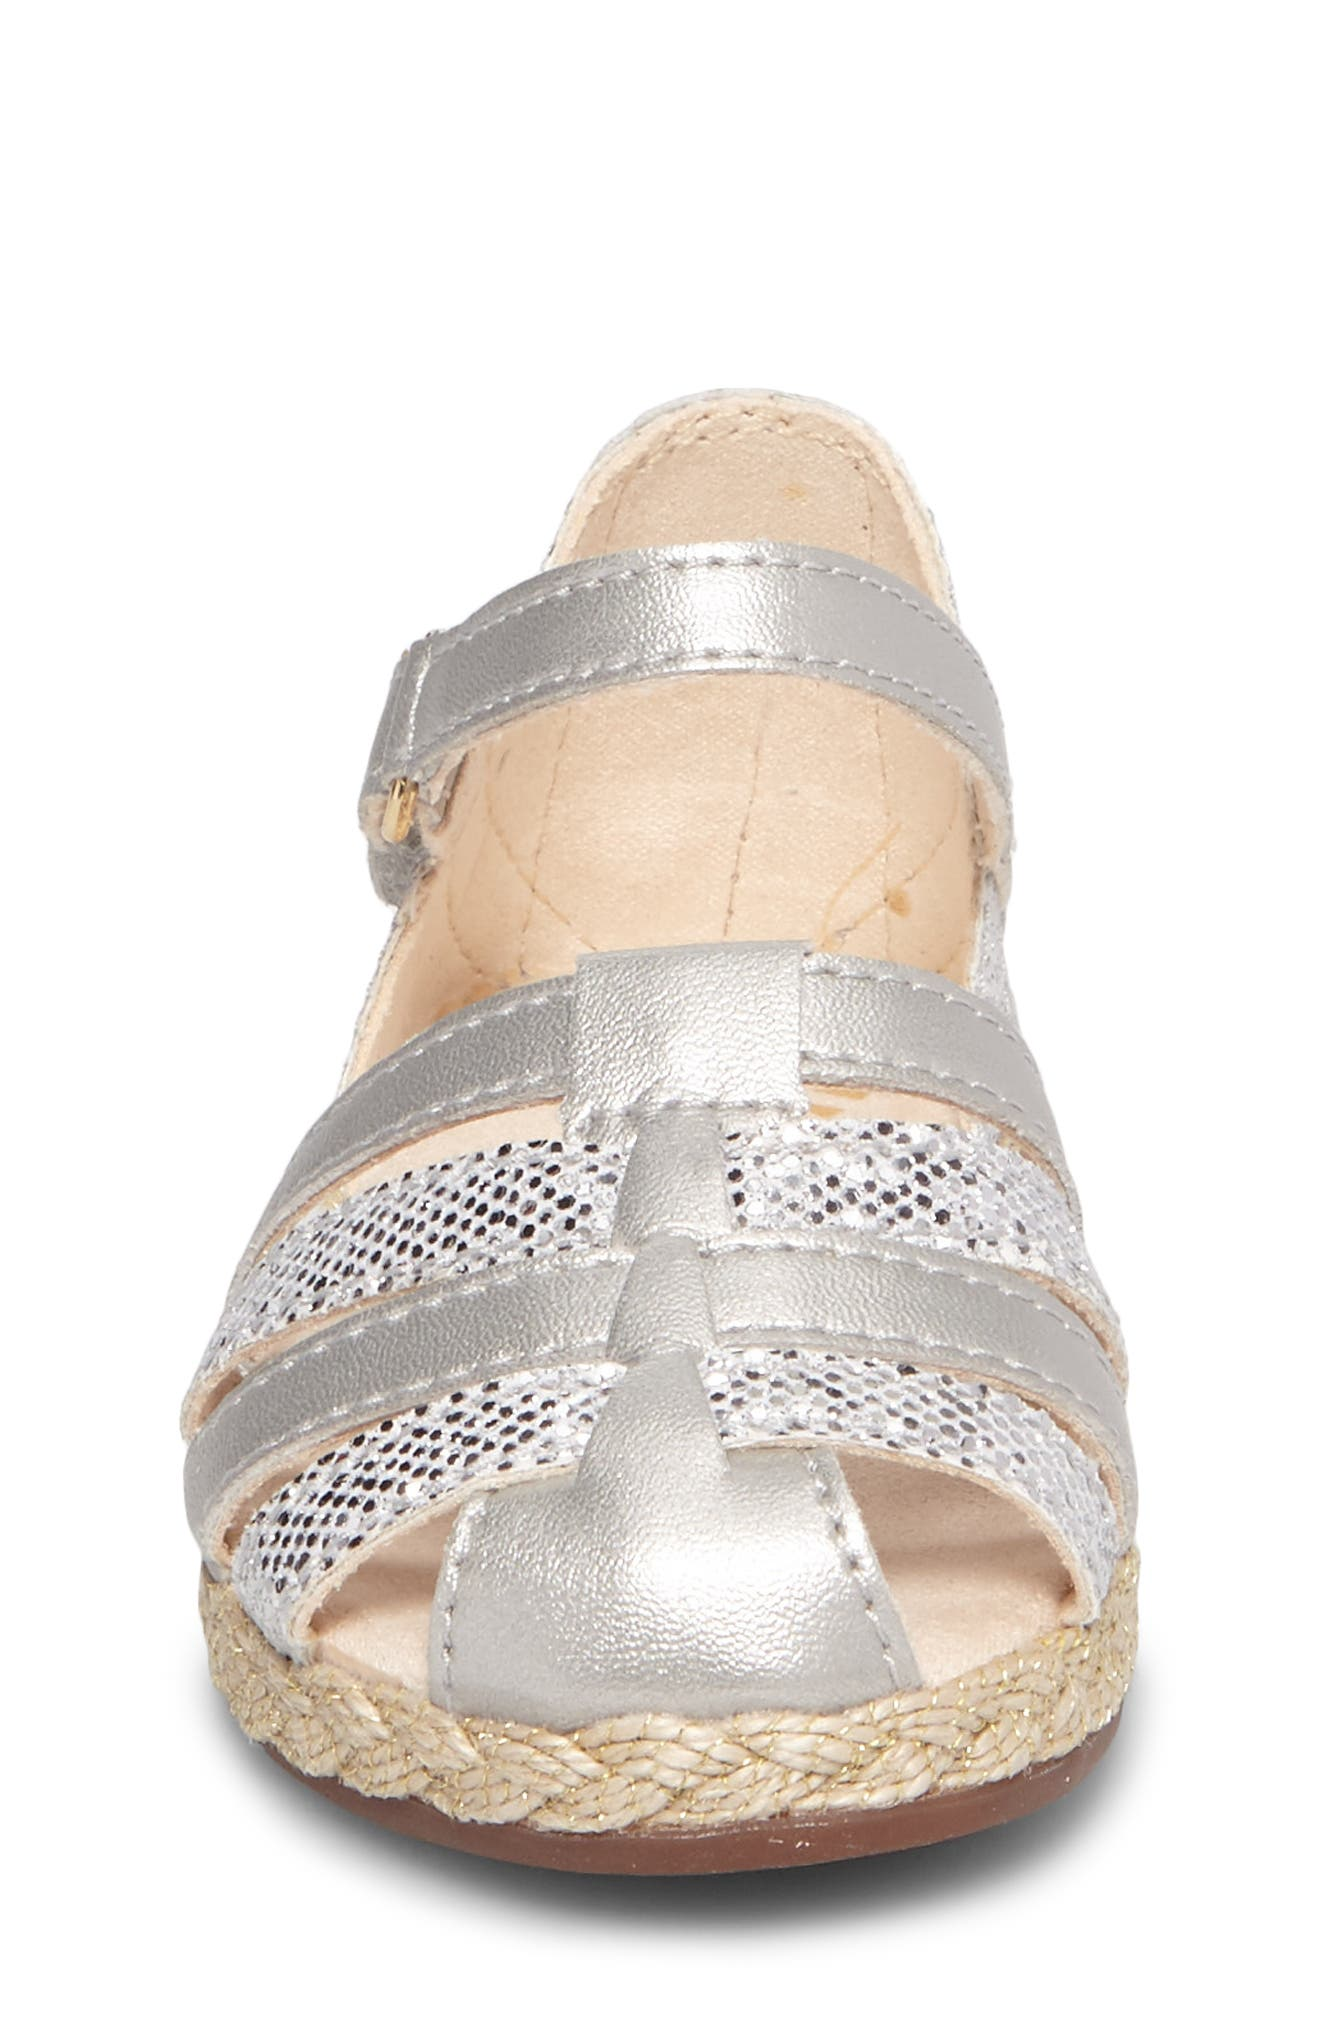 Matilde Espadrille Sandal,                             Alternate thumbnail 4, color,                             METALLIC